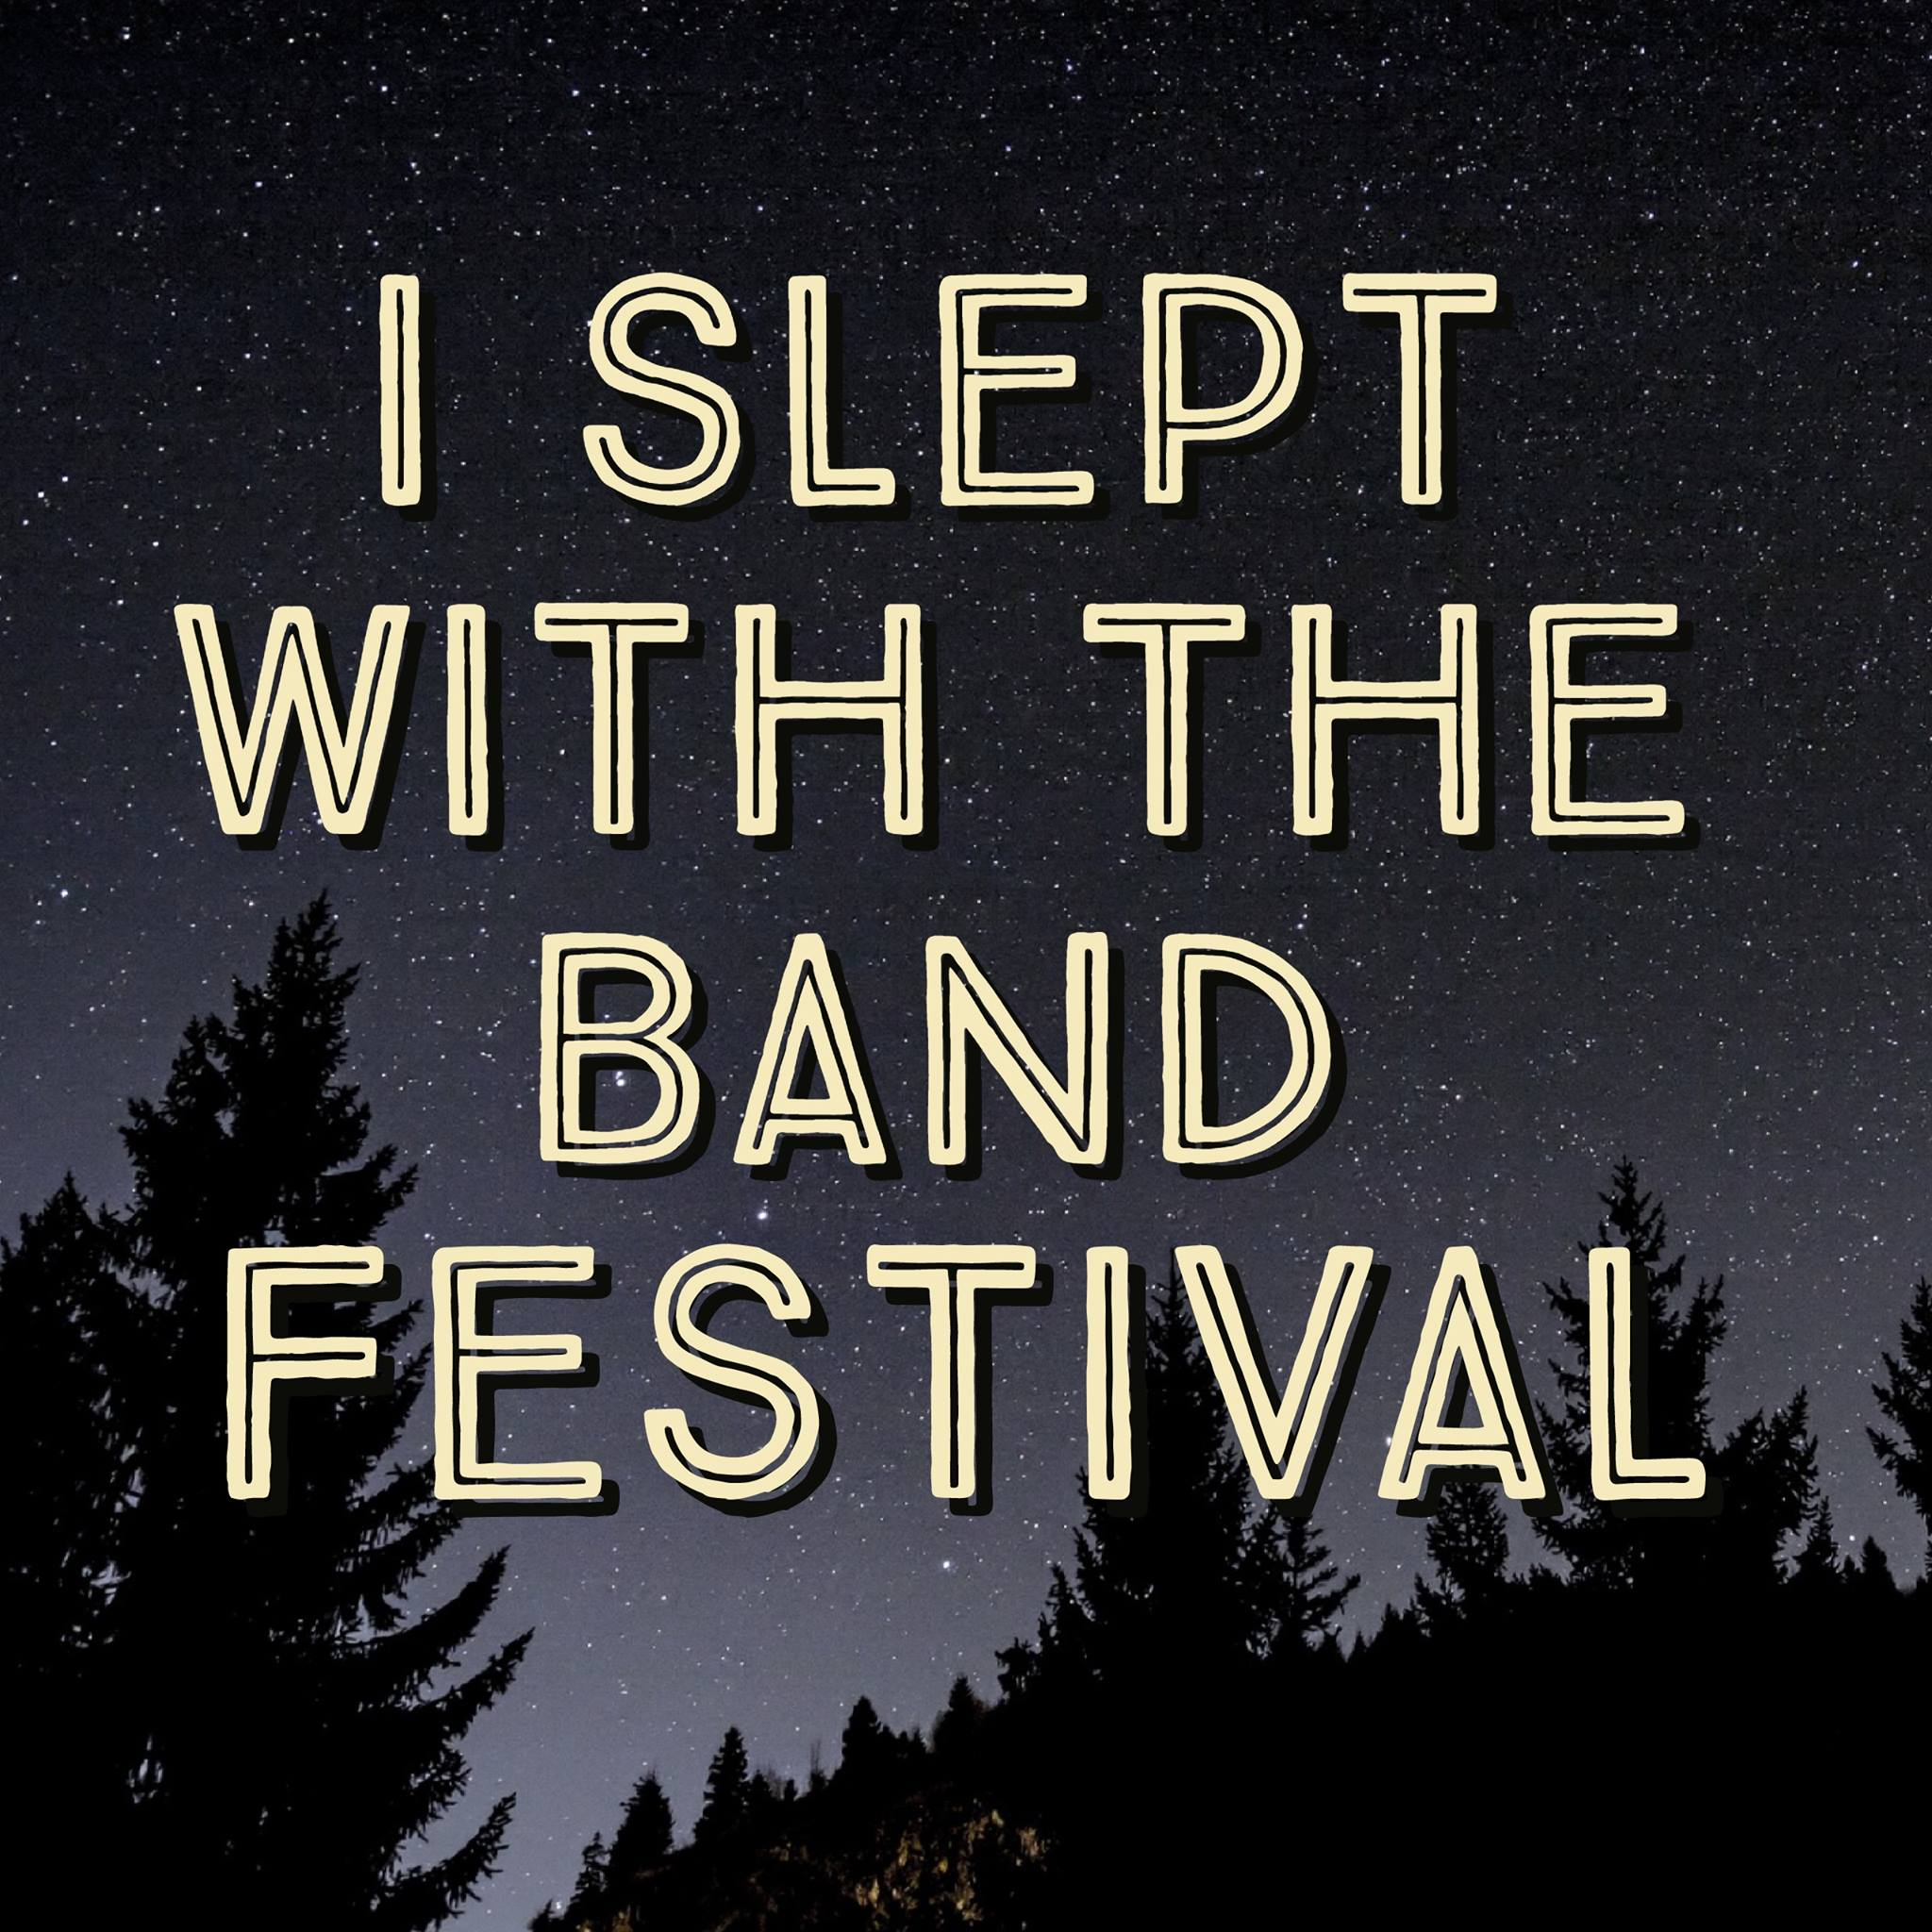 2018-I-Slept-With-The-Band-Festival.jpg